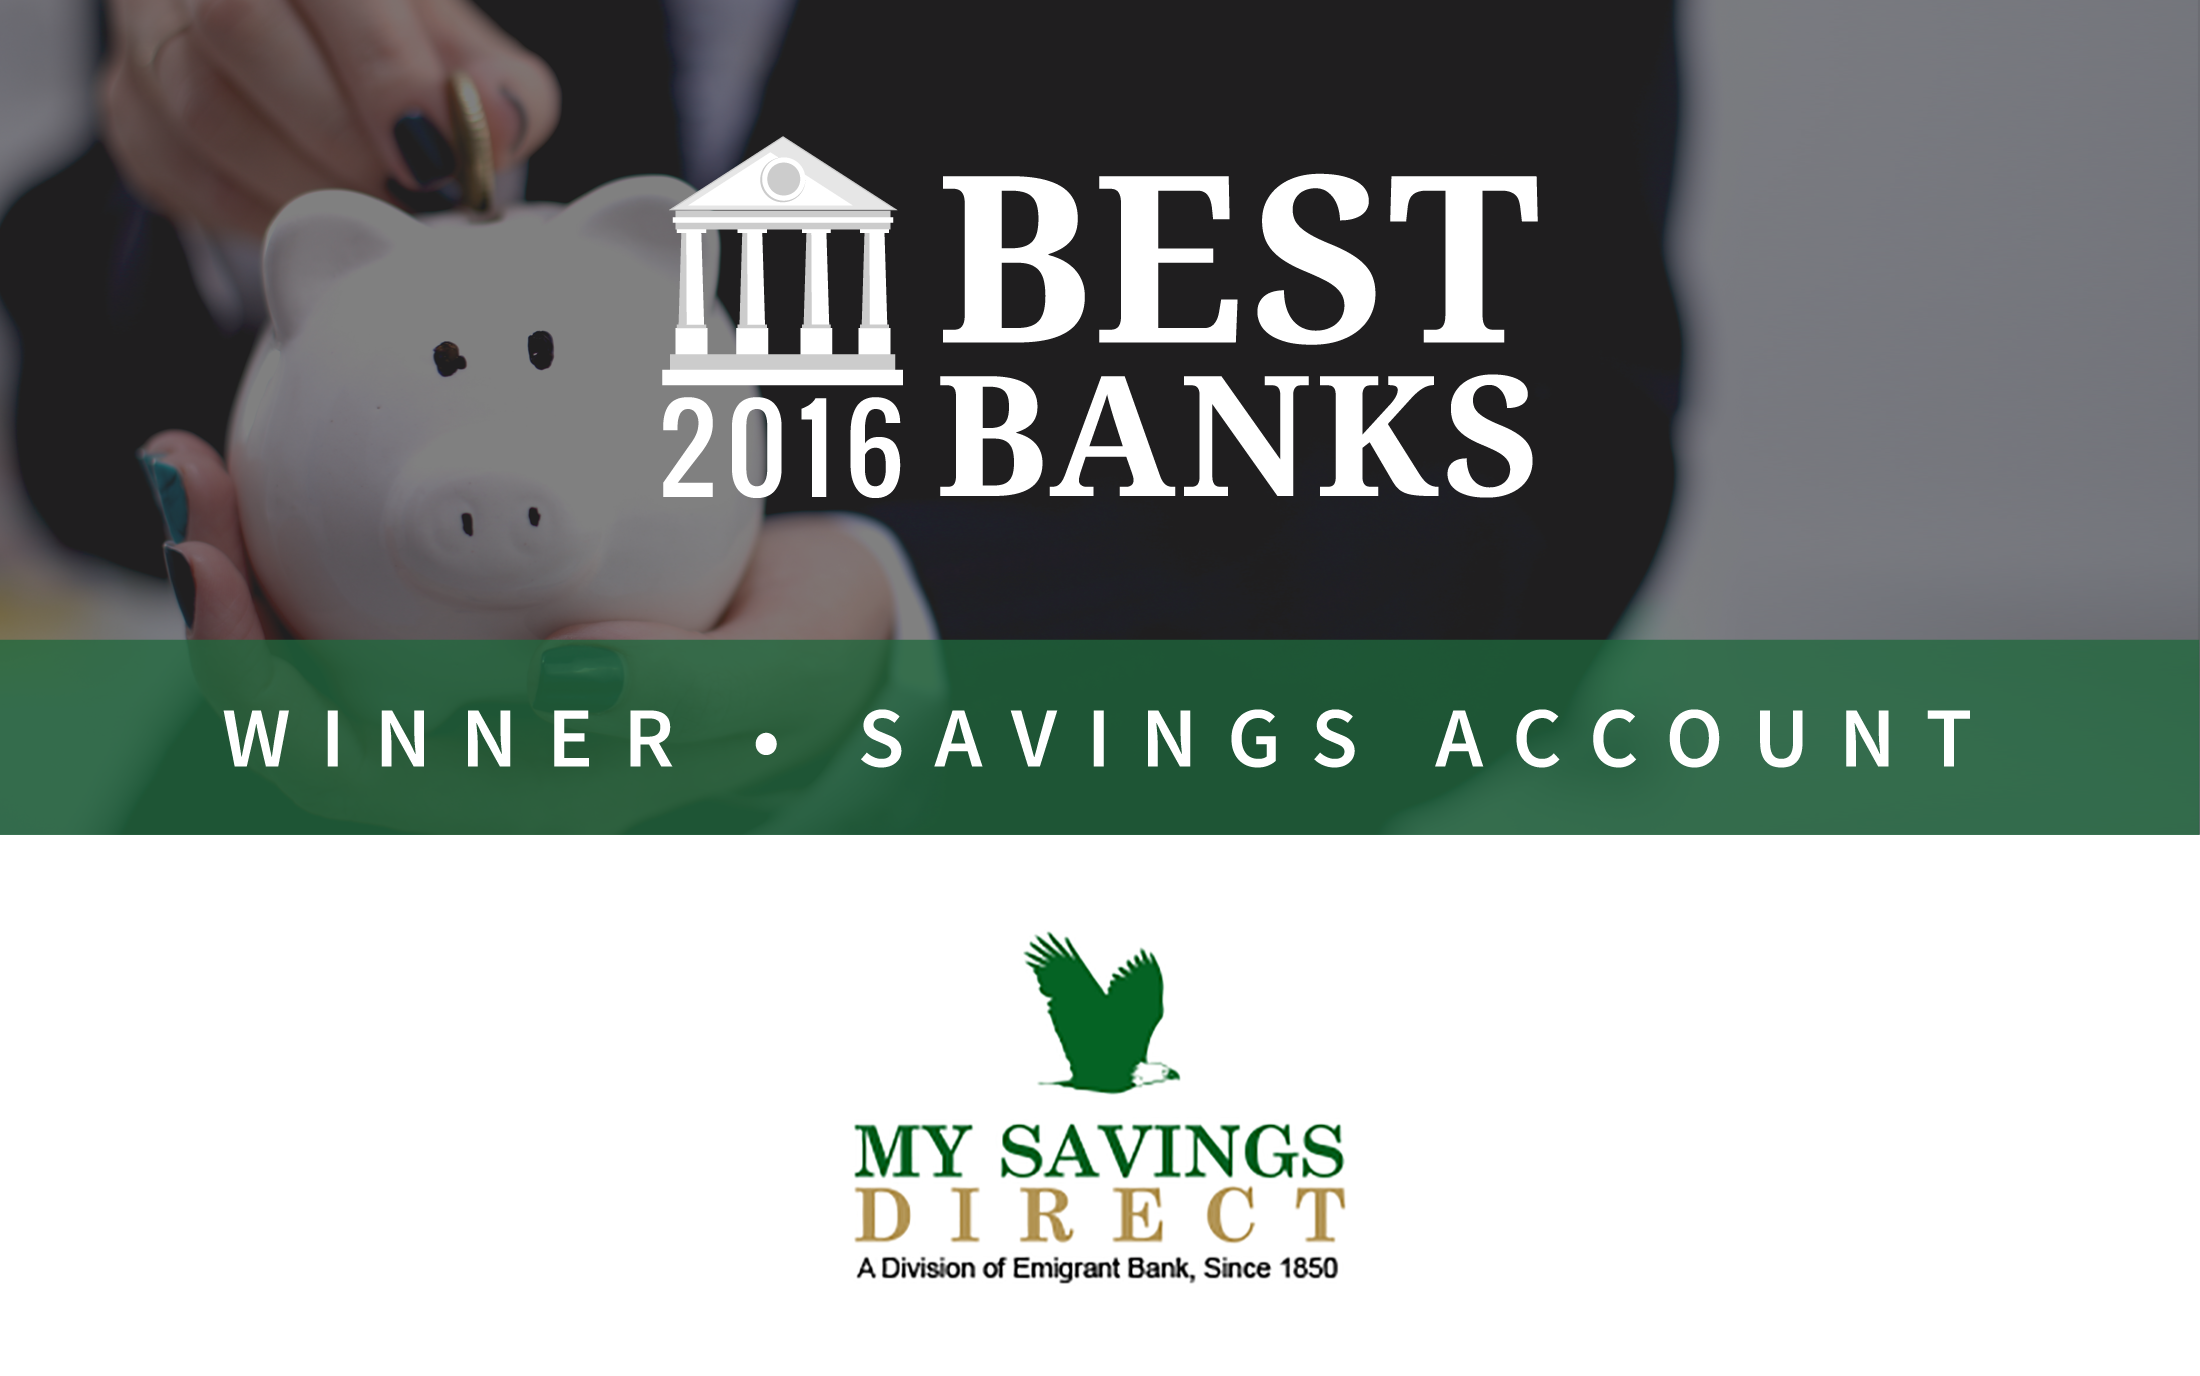 Best Savings Account 2016